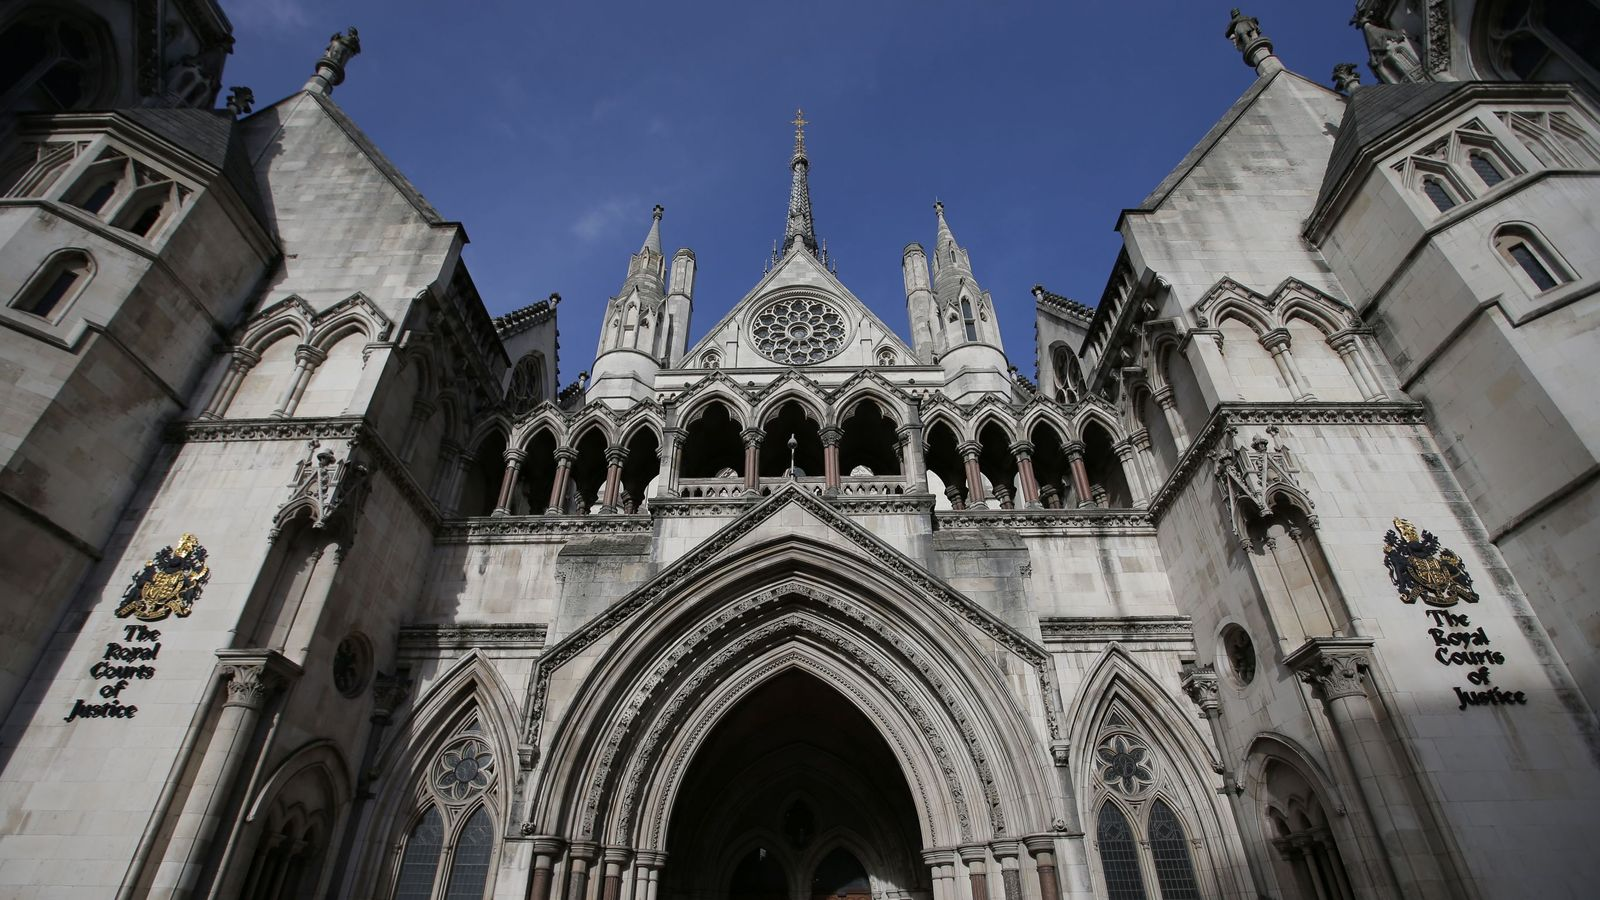 'I am sorry. Very rude of me': Judge's phone rings in court